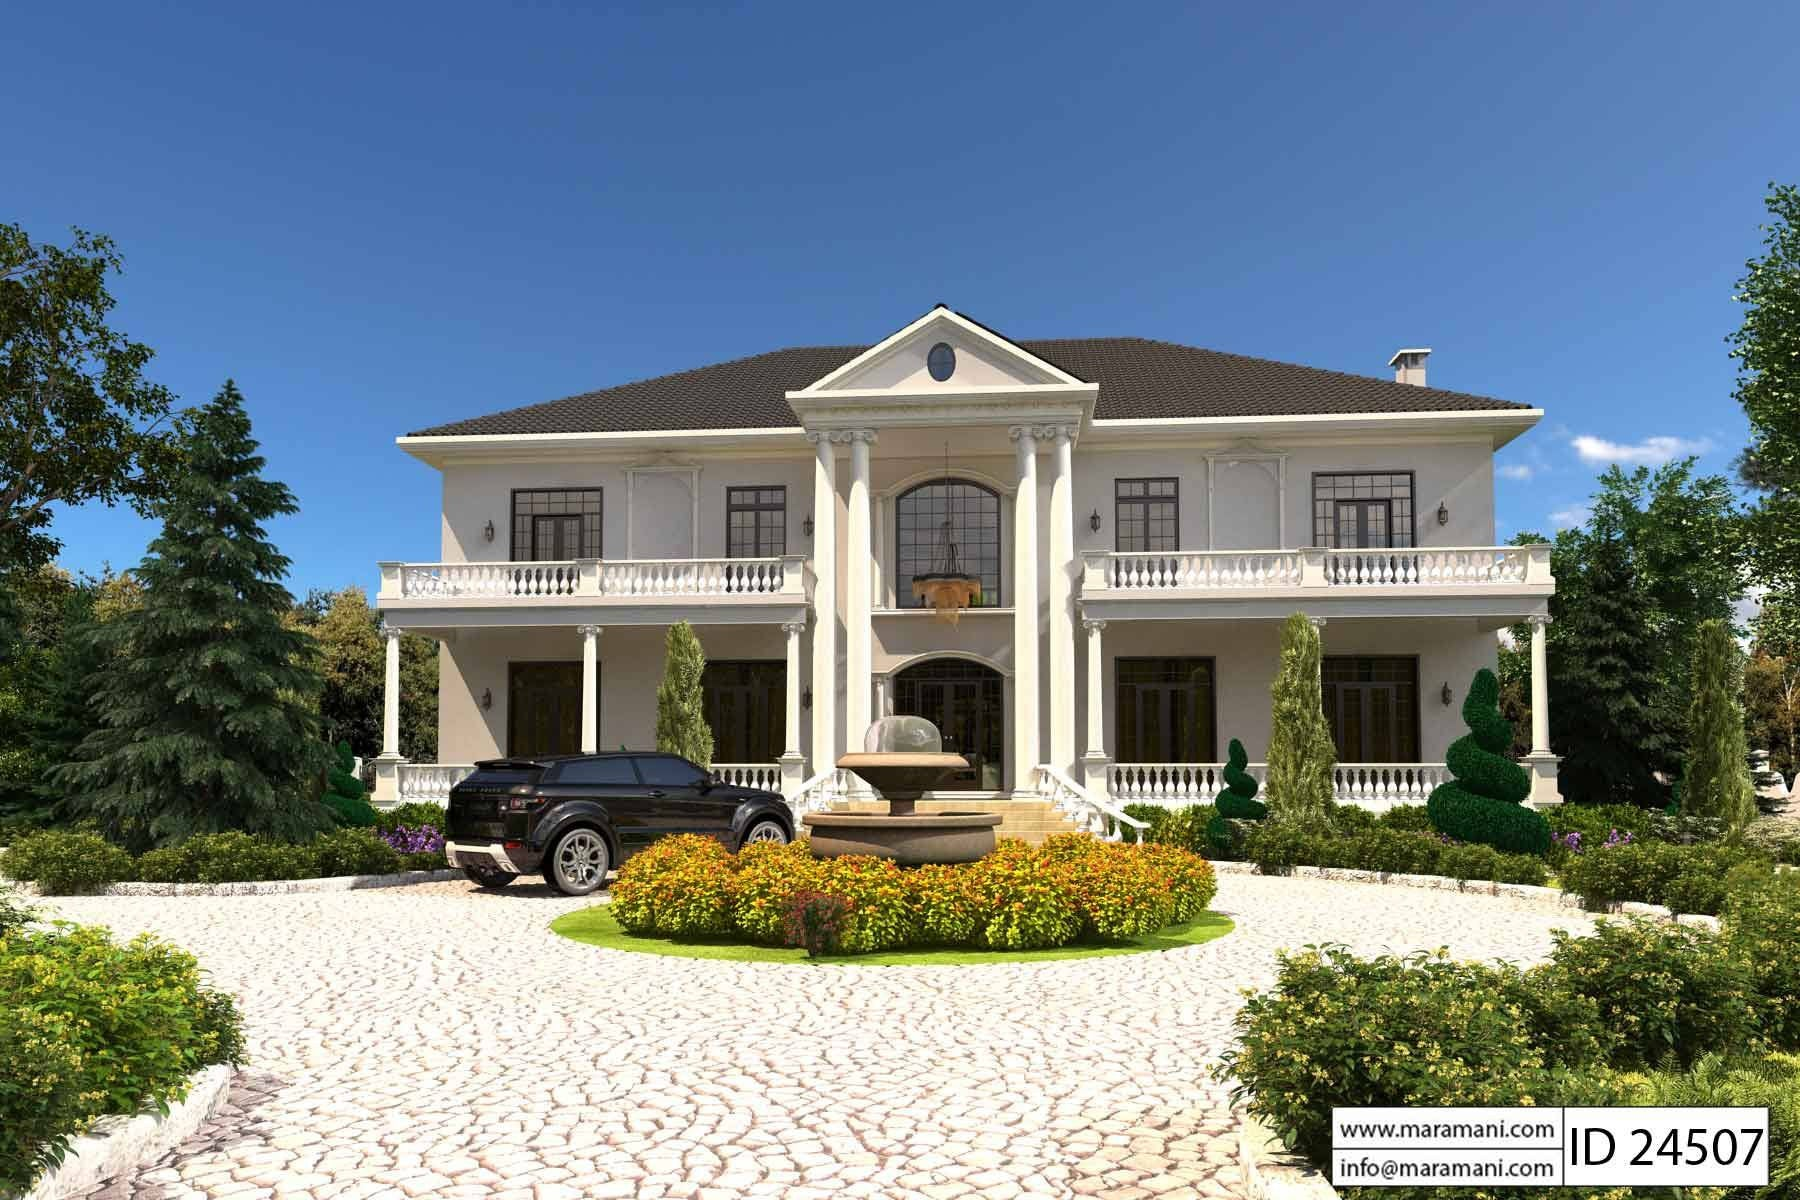 4 Bedroom House Plan ID 24507